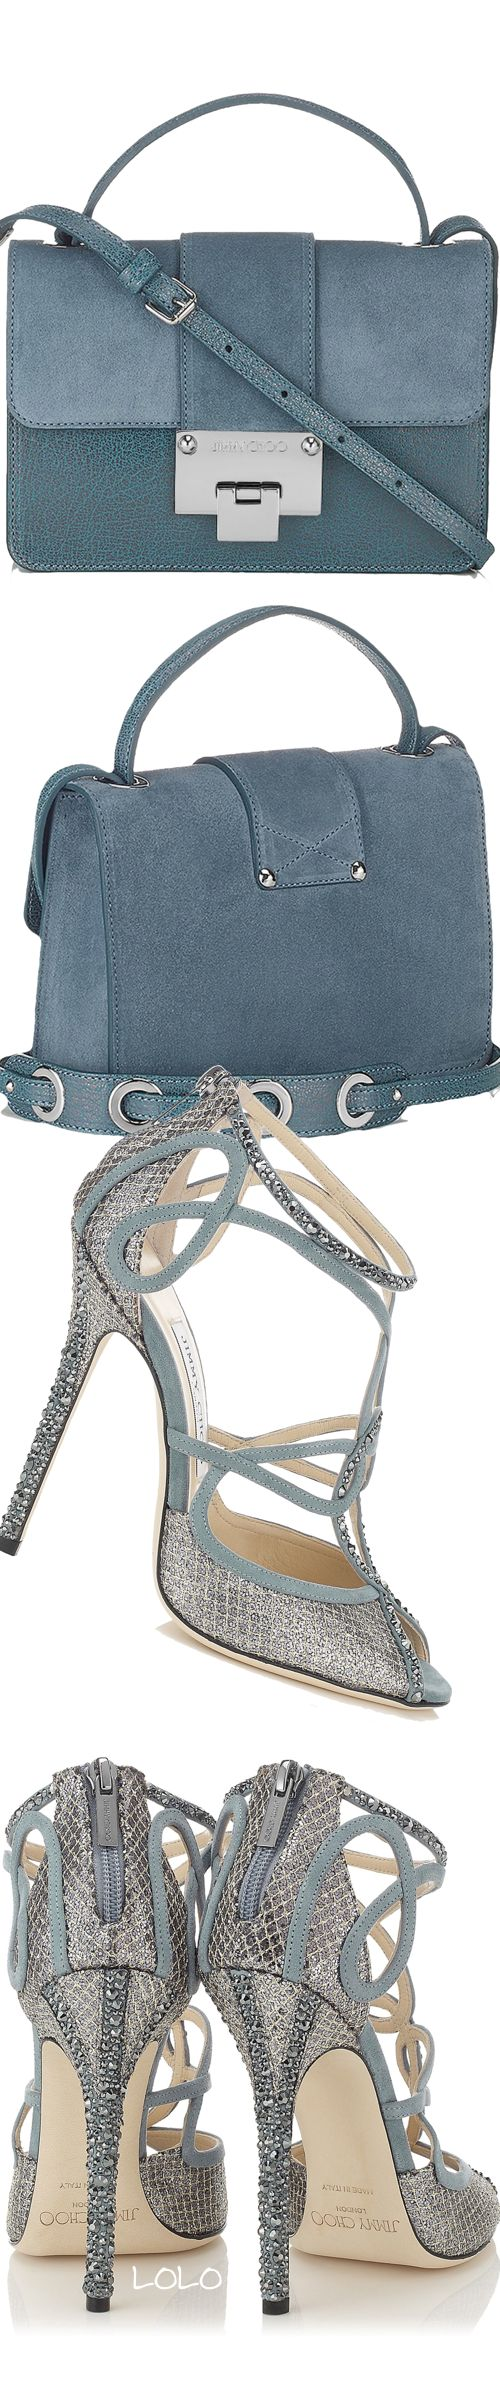 Jimmy Choo Ladies Handbags, Shoes and Accessories Collection 2015-2016 (24) - Copy